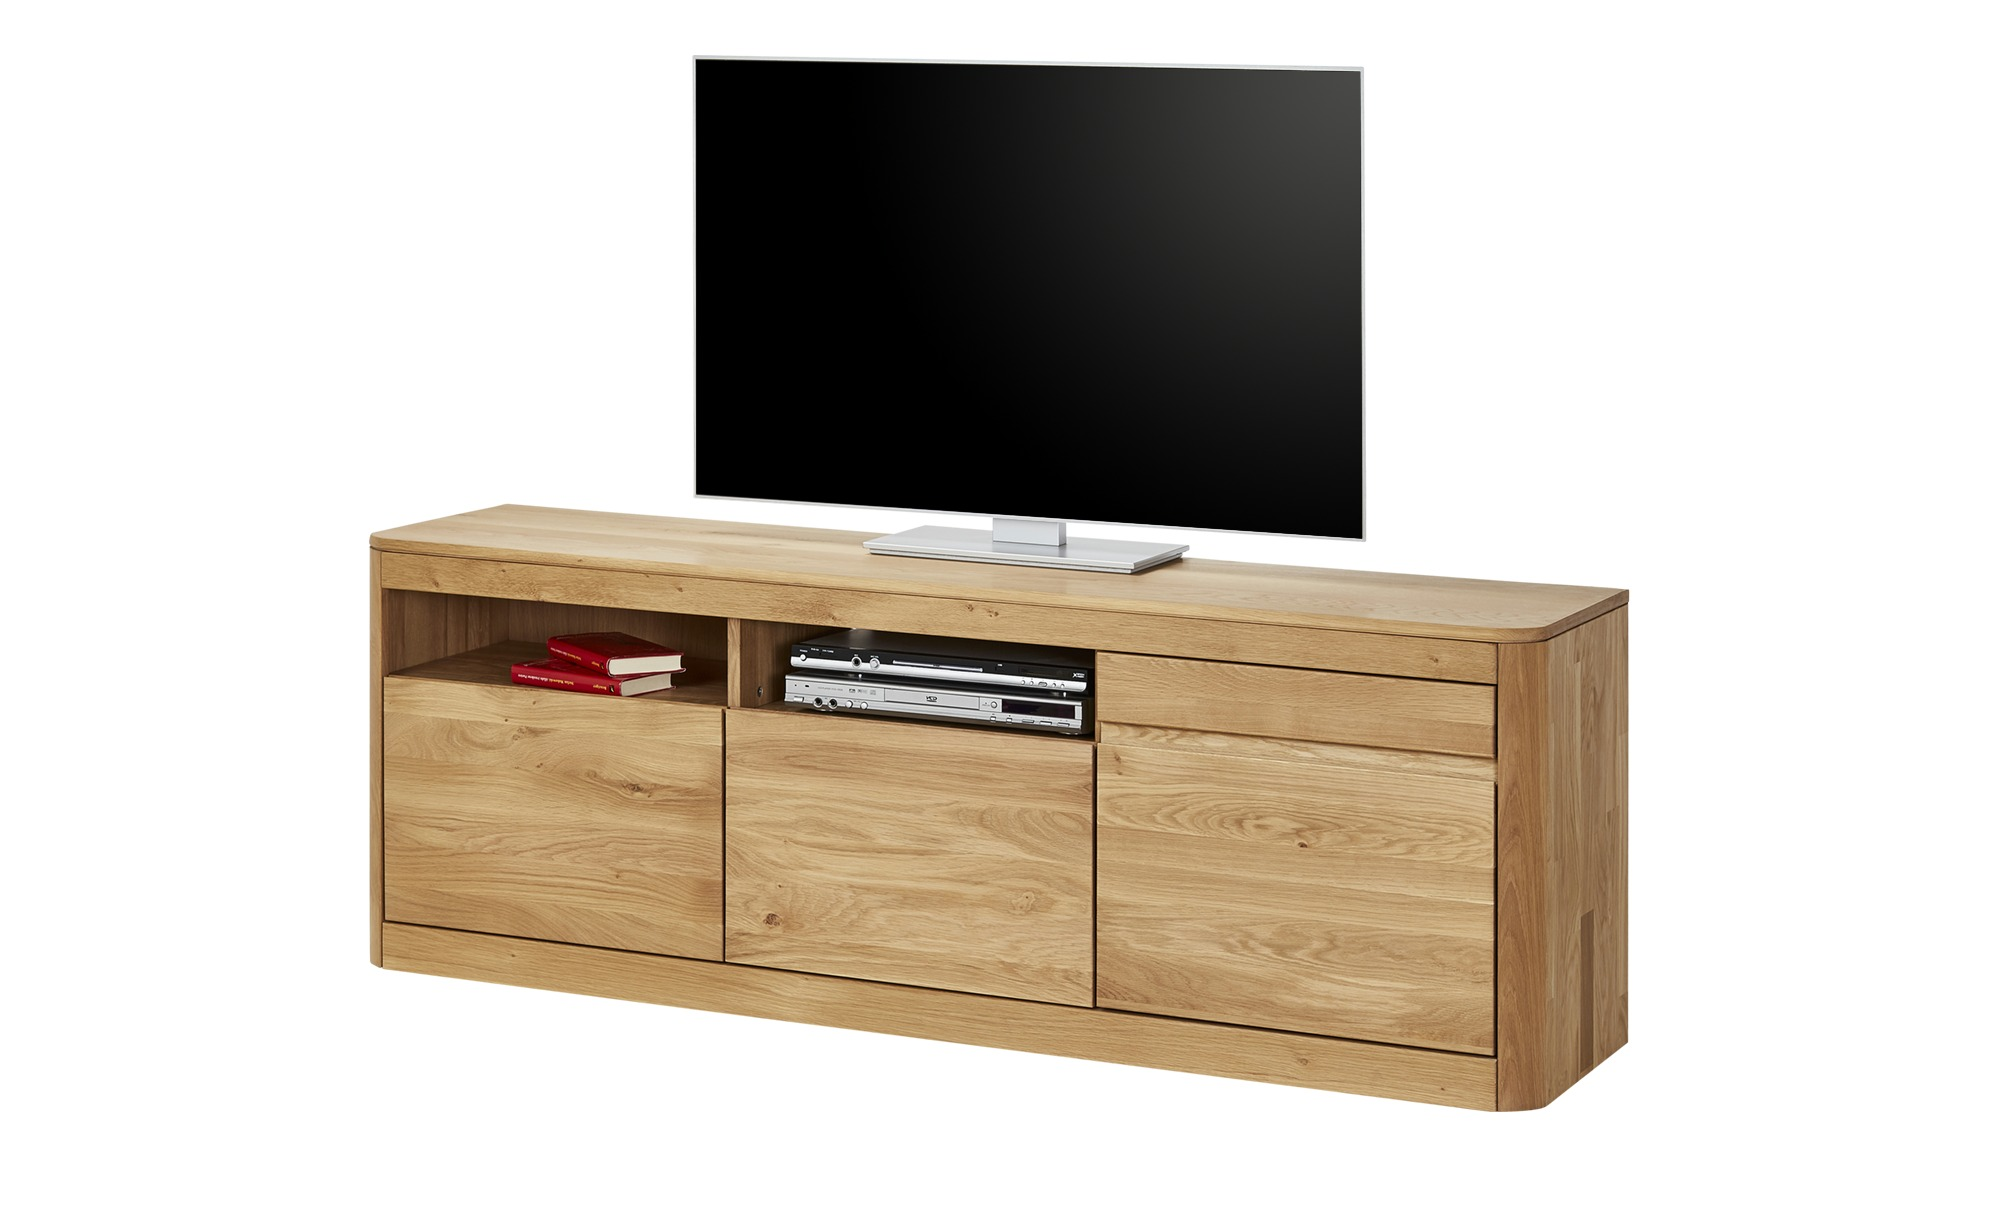 Woodford TV-Lowboard  Boston ¦ Maße (cm): B: 170 H: 60 T: 41 Kommoden & Sideboards > Lowboards - Höffner